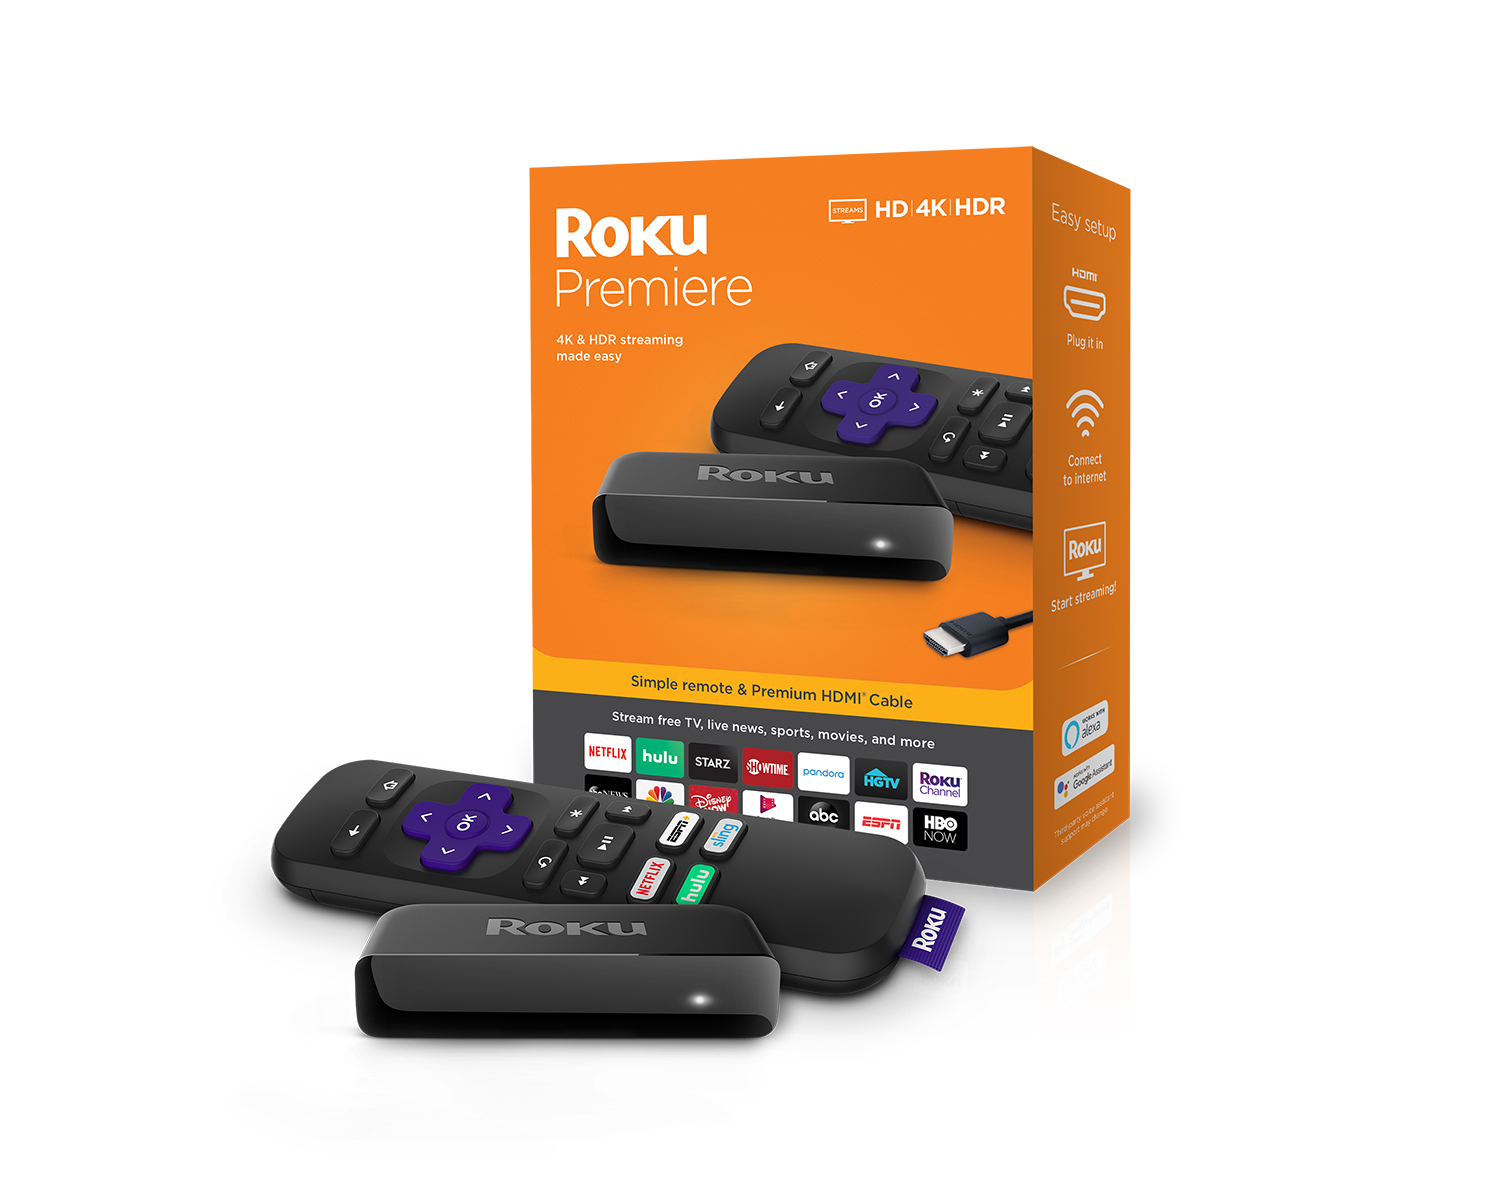 Best Free Roku Channels 2020.Here Are The Top 10 Free Roku Channels As Of November 2019